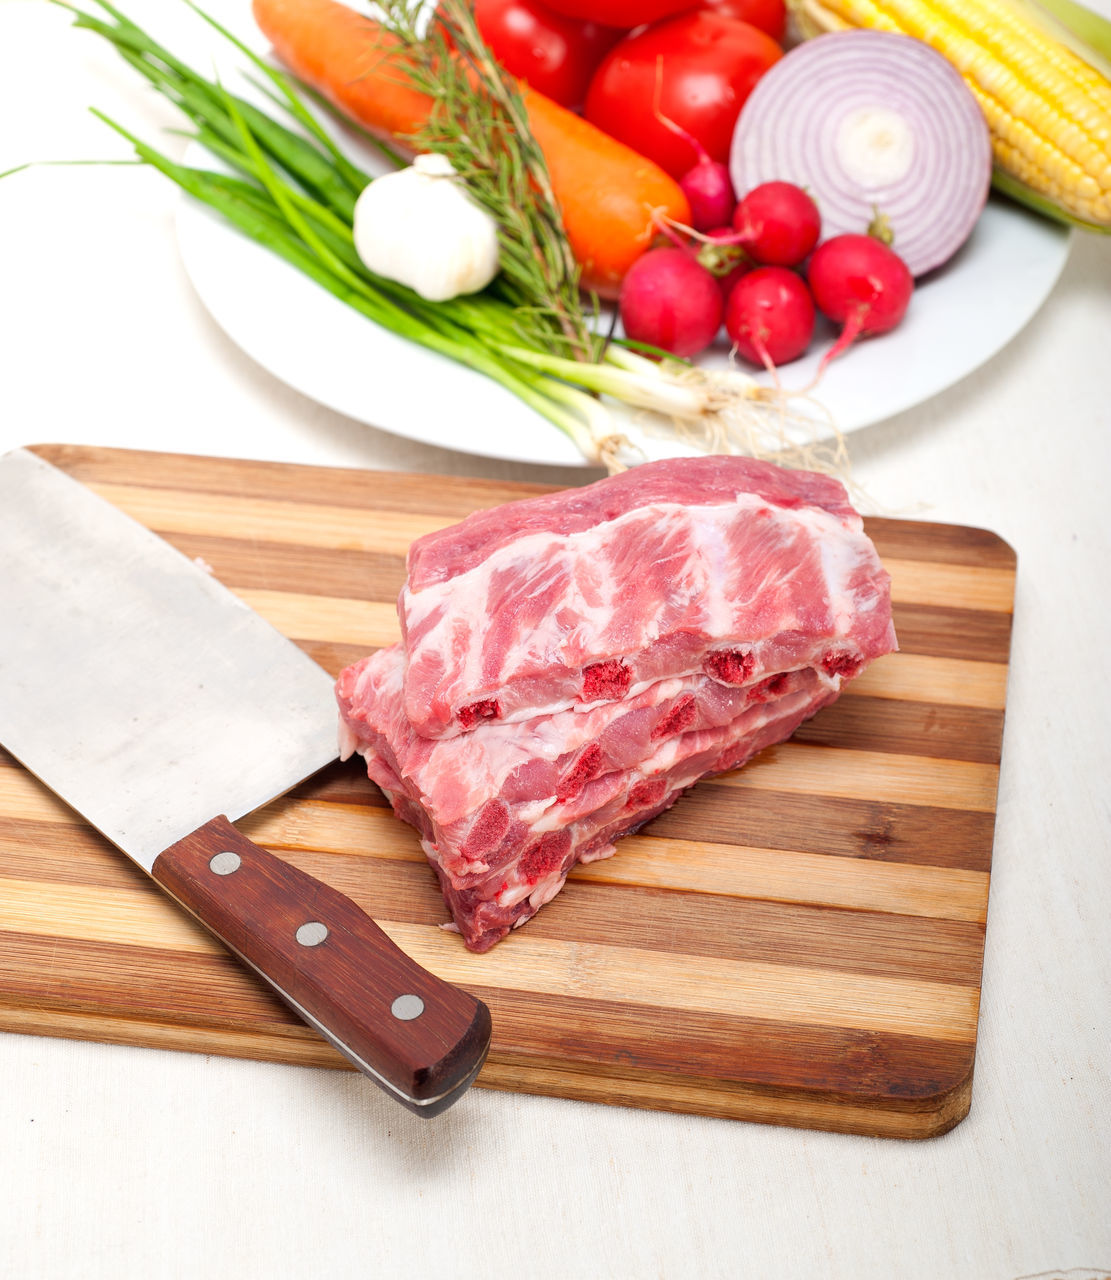 Meat Slice With Vegetables In Plate On Table